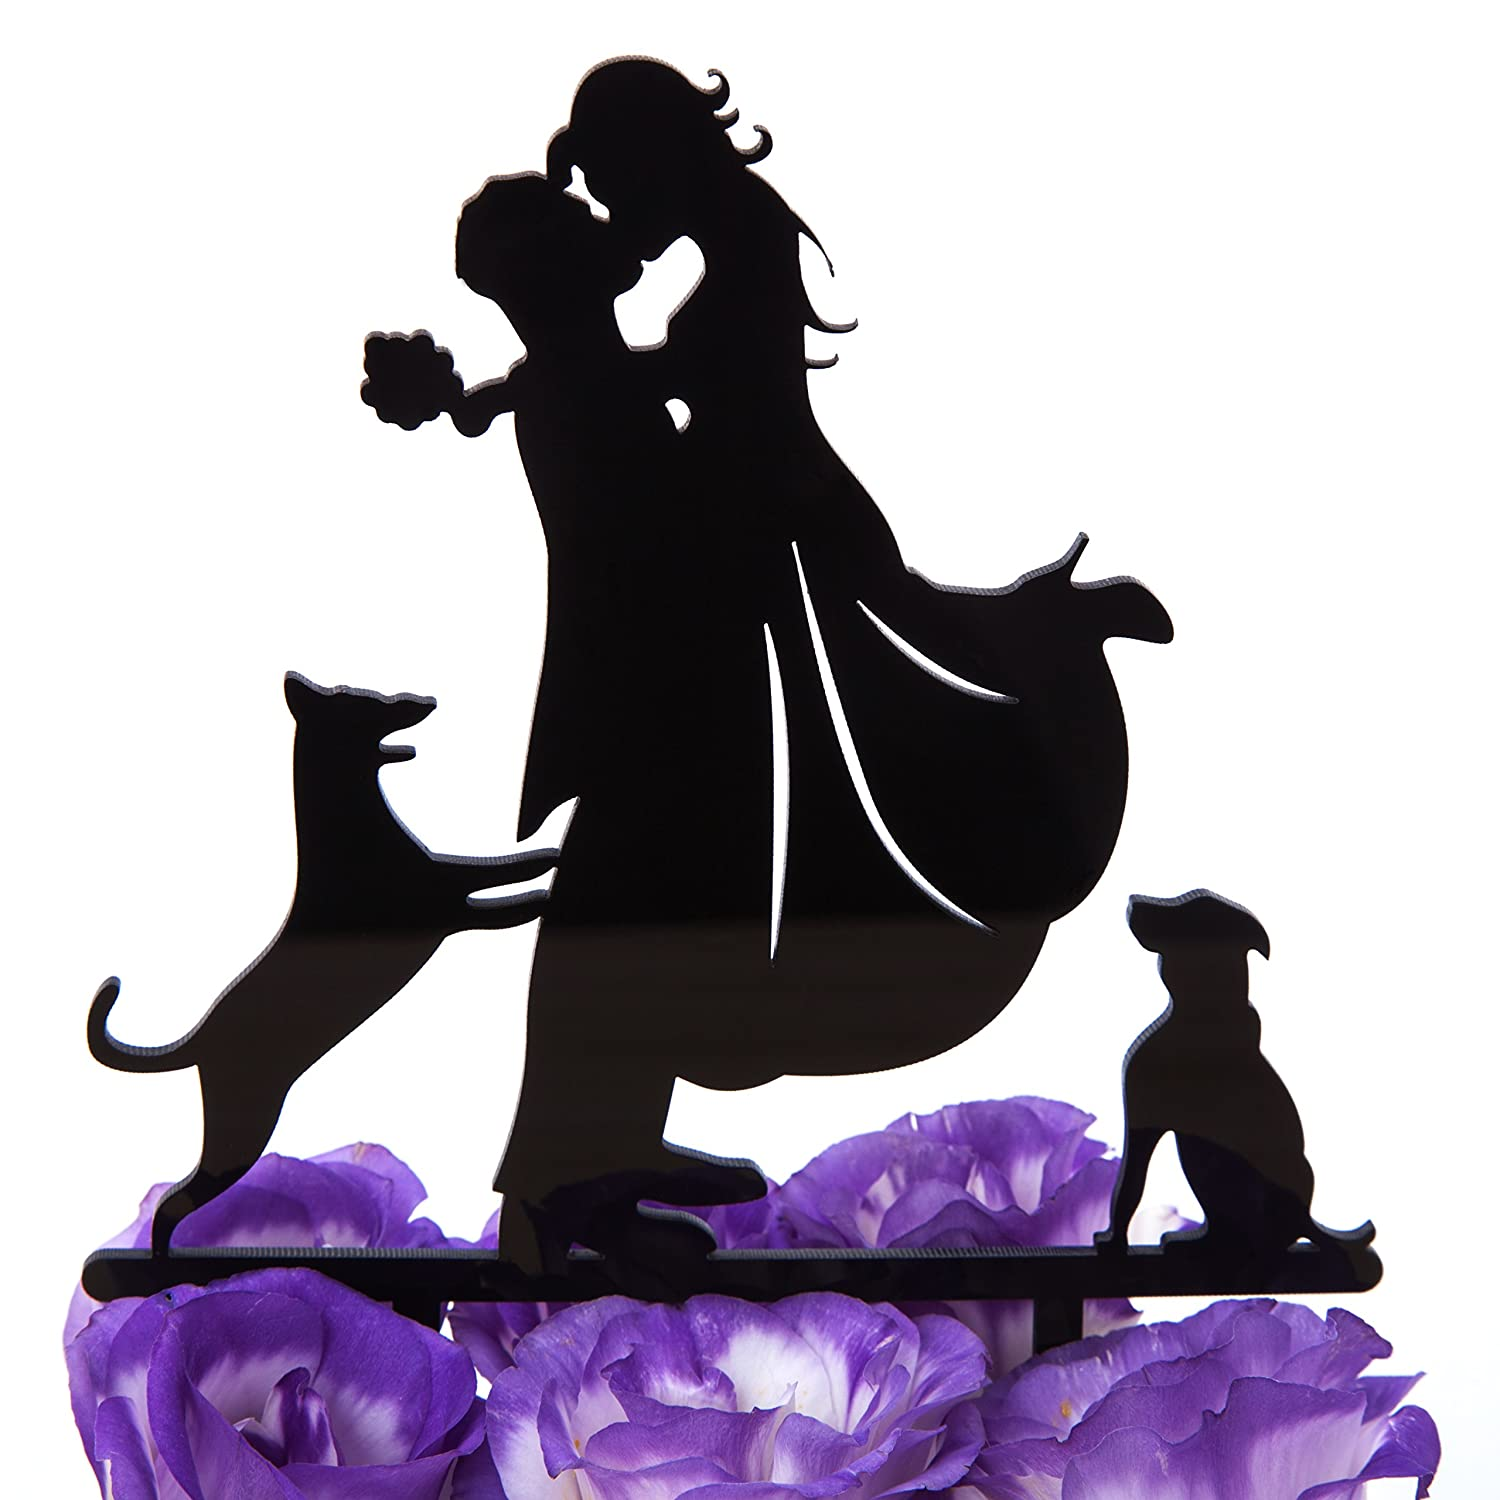 Buy Black Lovenjoy With Gift Box Love Her Love Her Dog Silhouette Acrylic Wedding Engagement Cake Decoration Topper Black 5 Inch Updated Version Online At Low Prices In India Amazon In